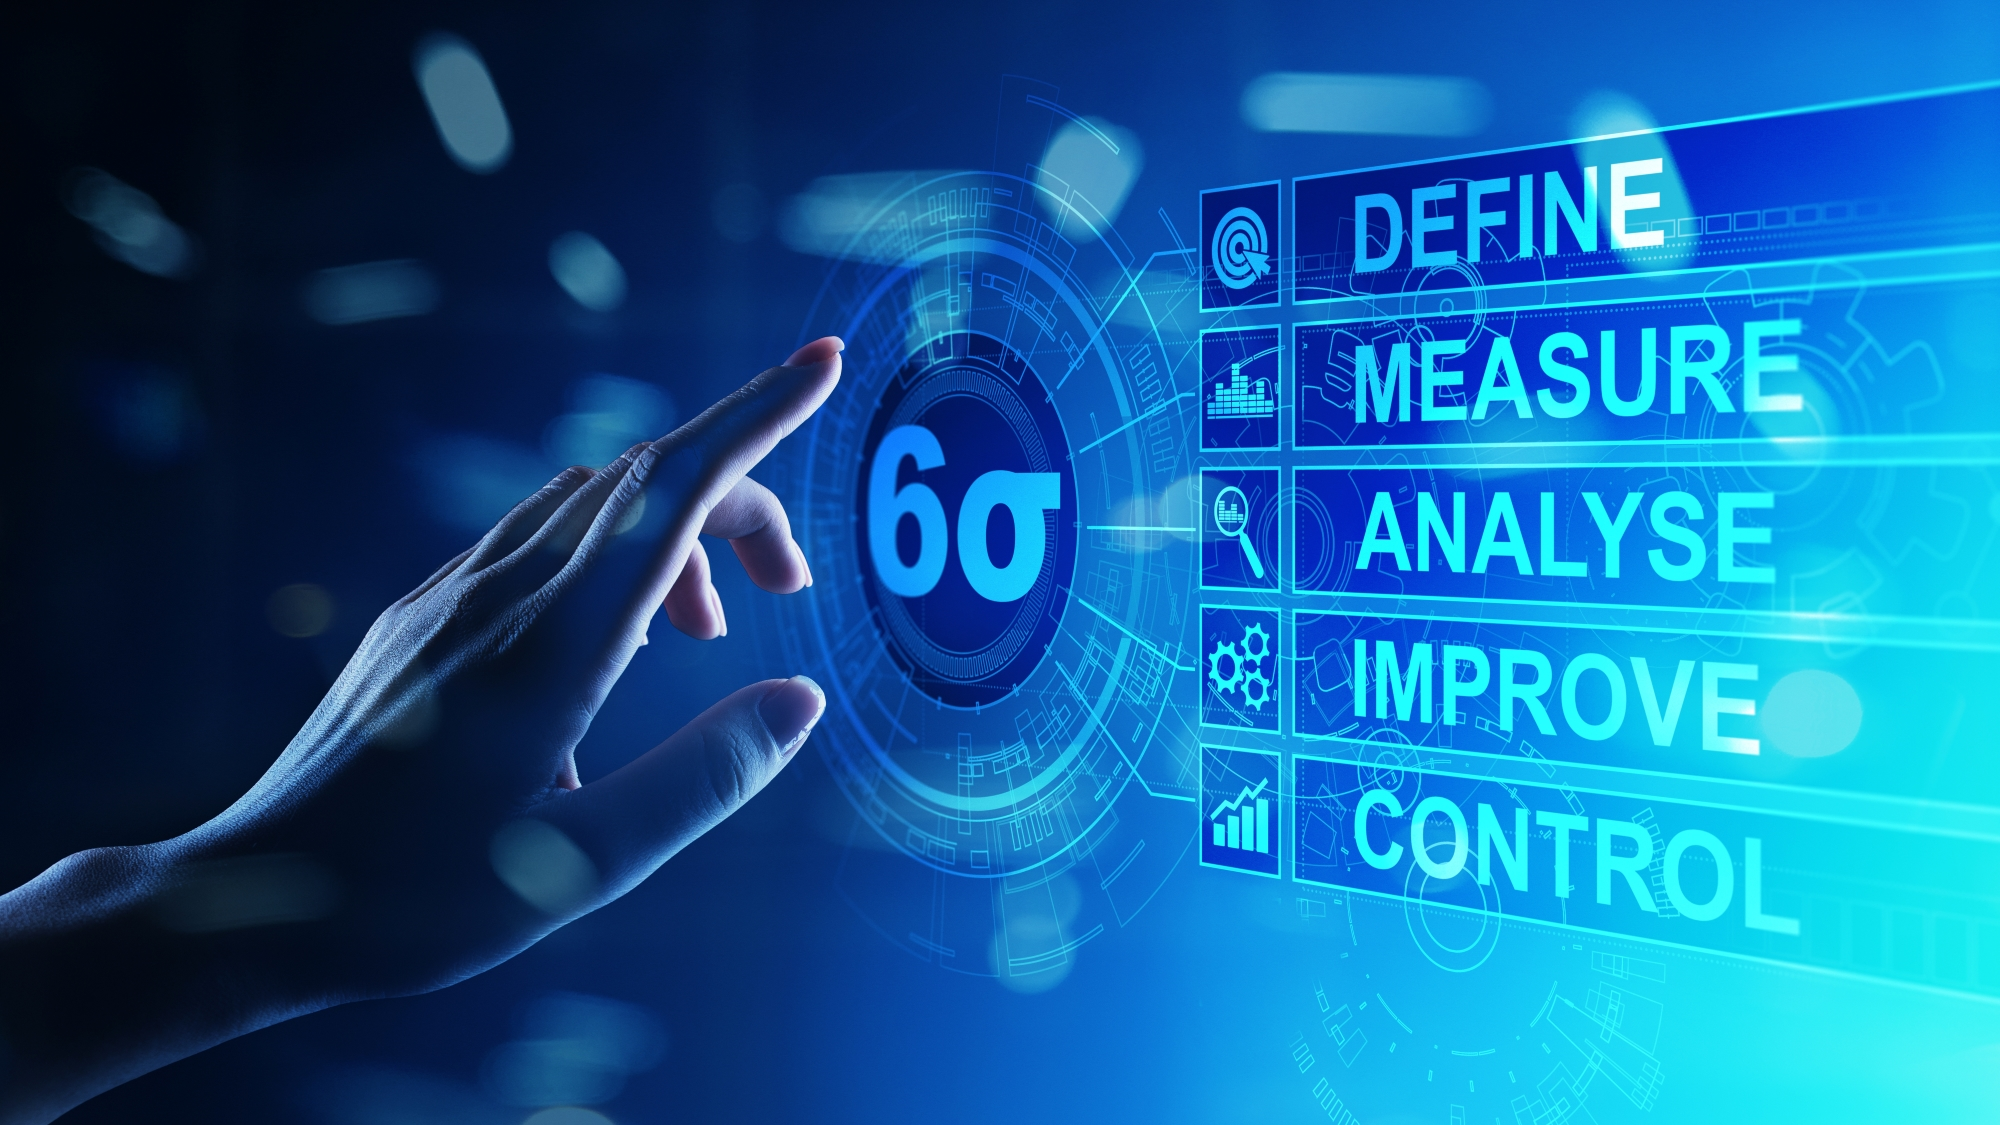 Enhancing Value How Lean Six Sigma Complements Agile Software Development